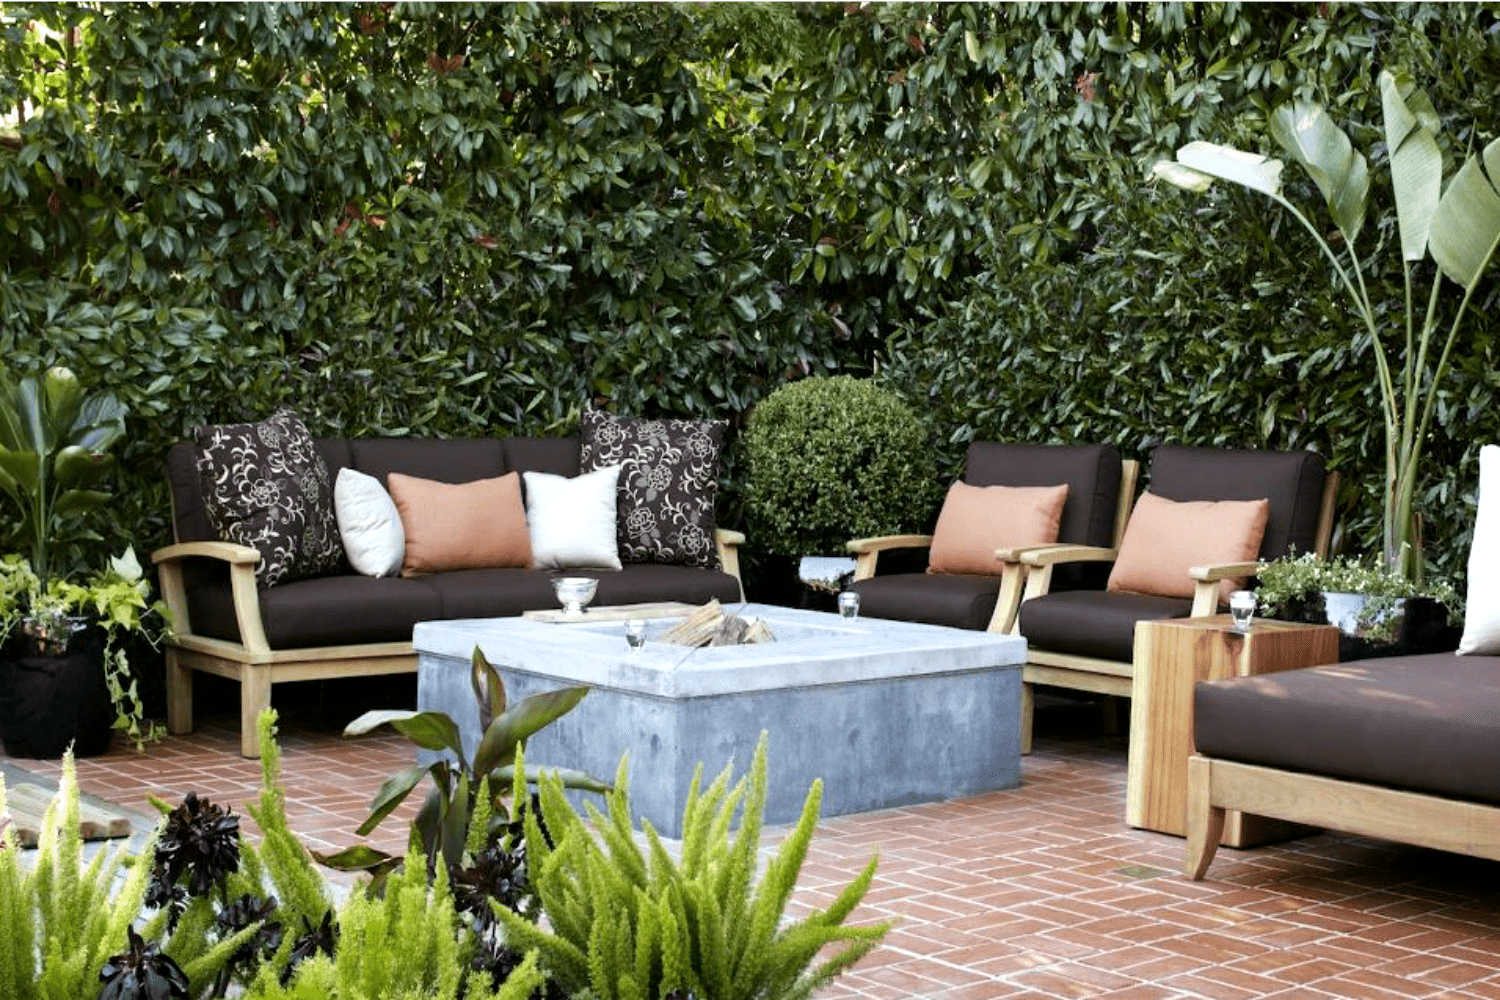 Patio area with several chairs and couches and fire pit adorned with lush green walls.